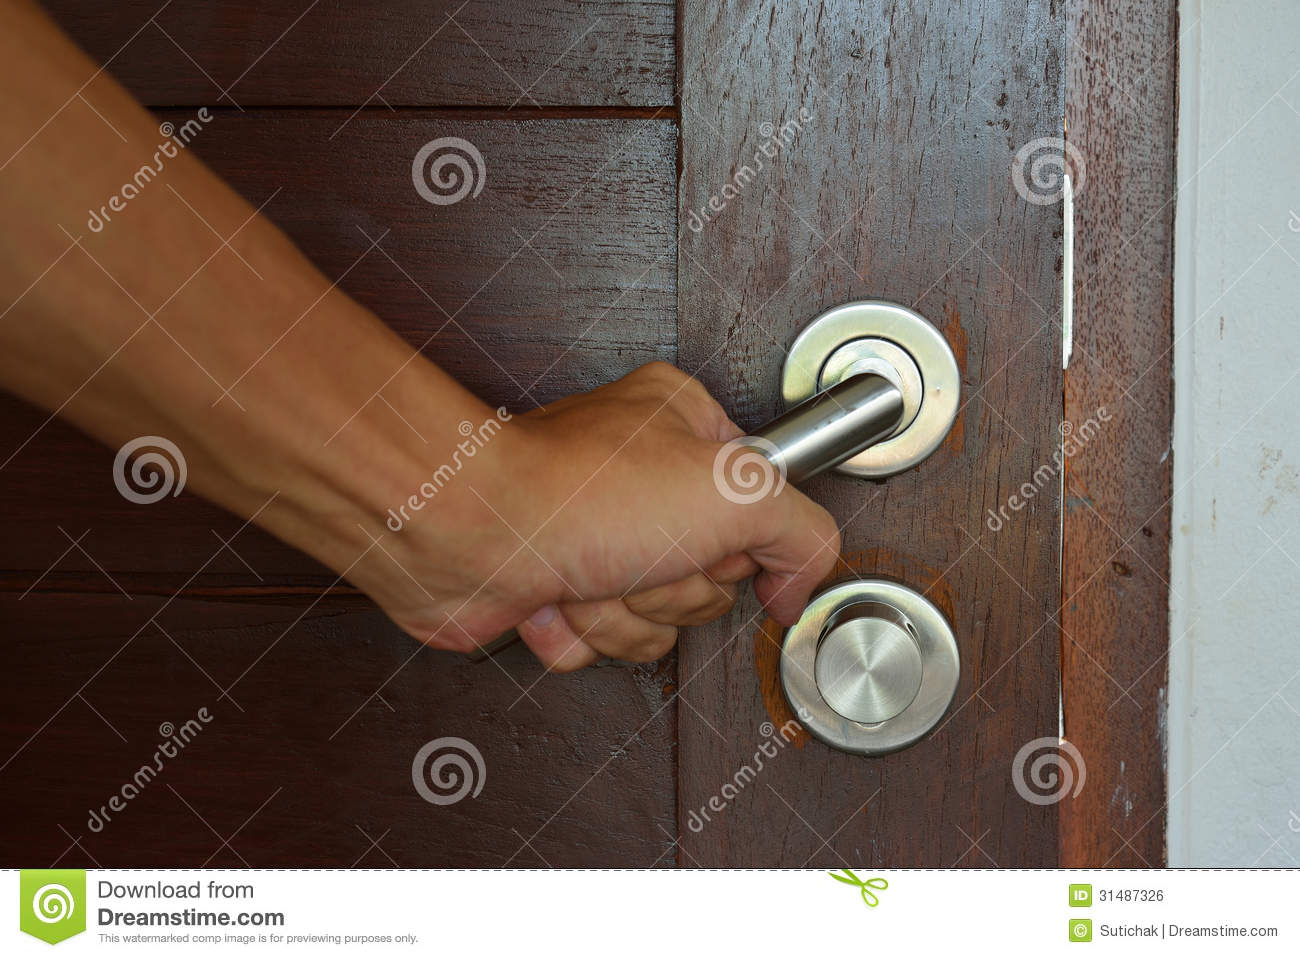 handshake door knob photo - 10